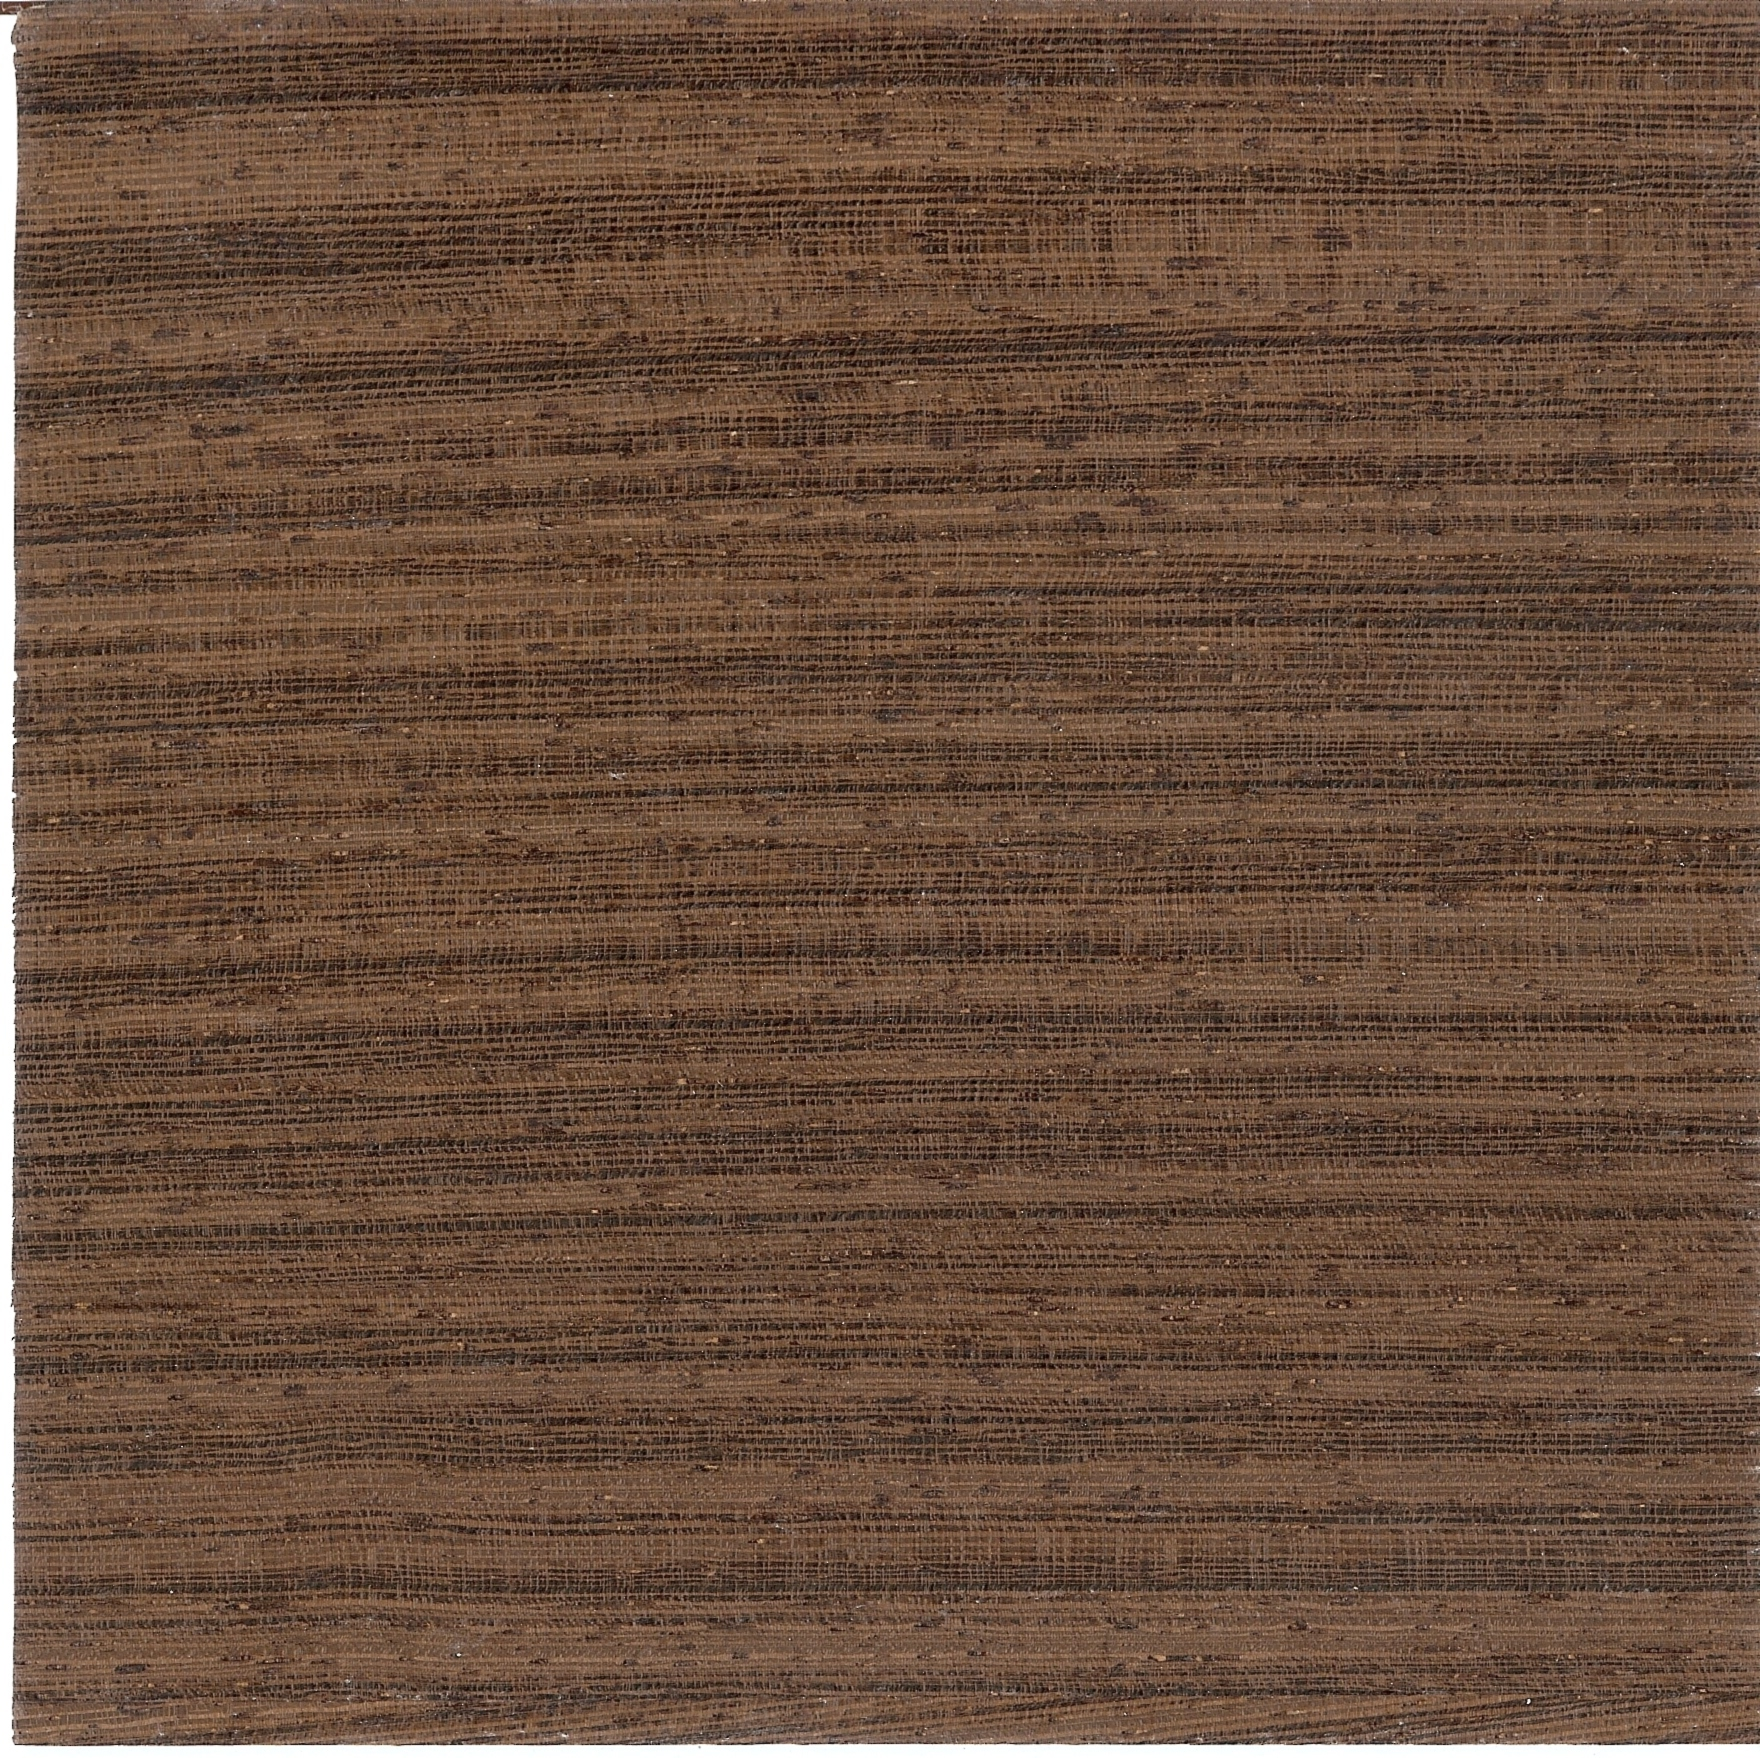 Taiwan fire retardant board wood veneer top building